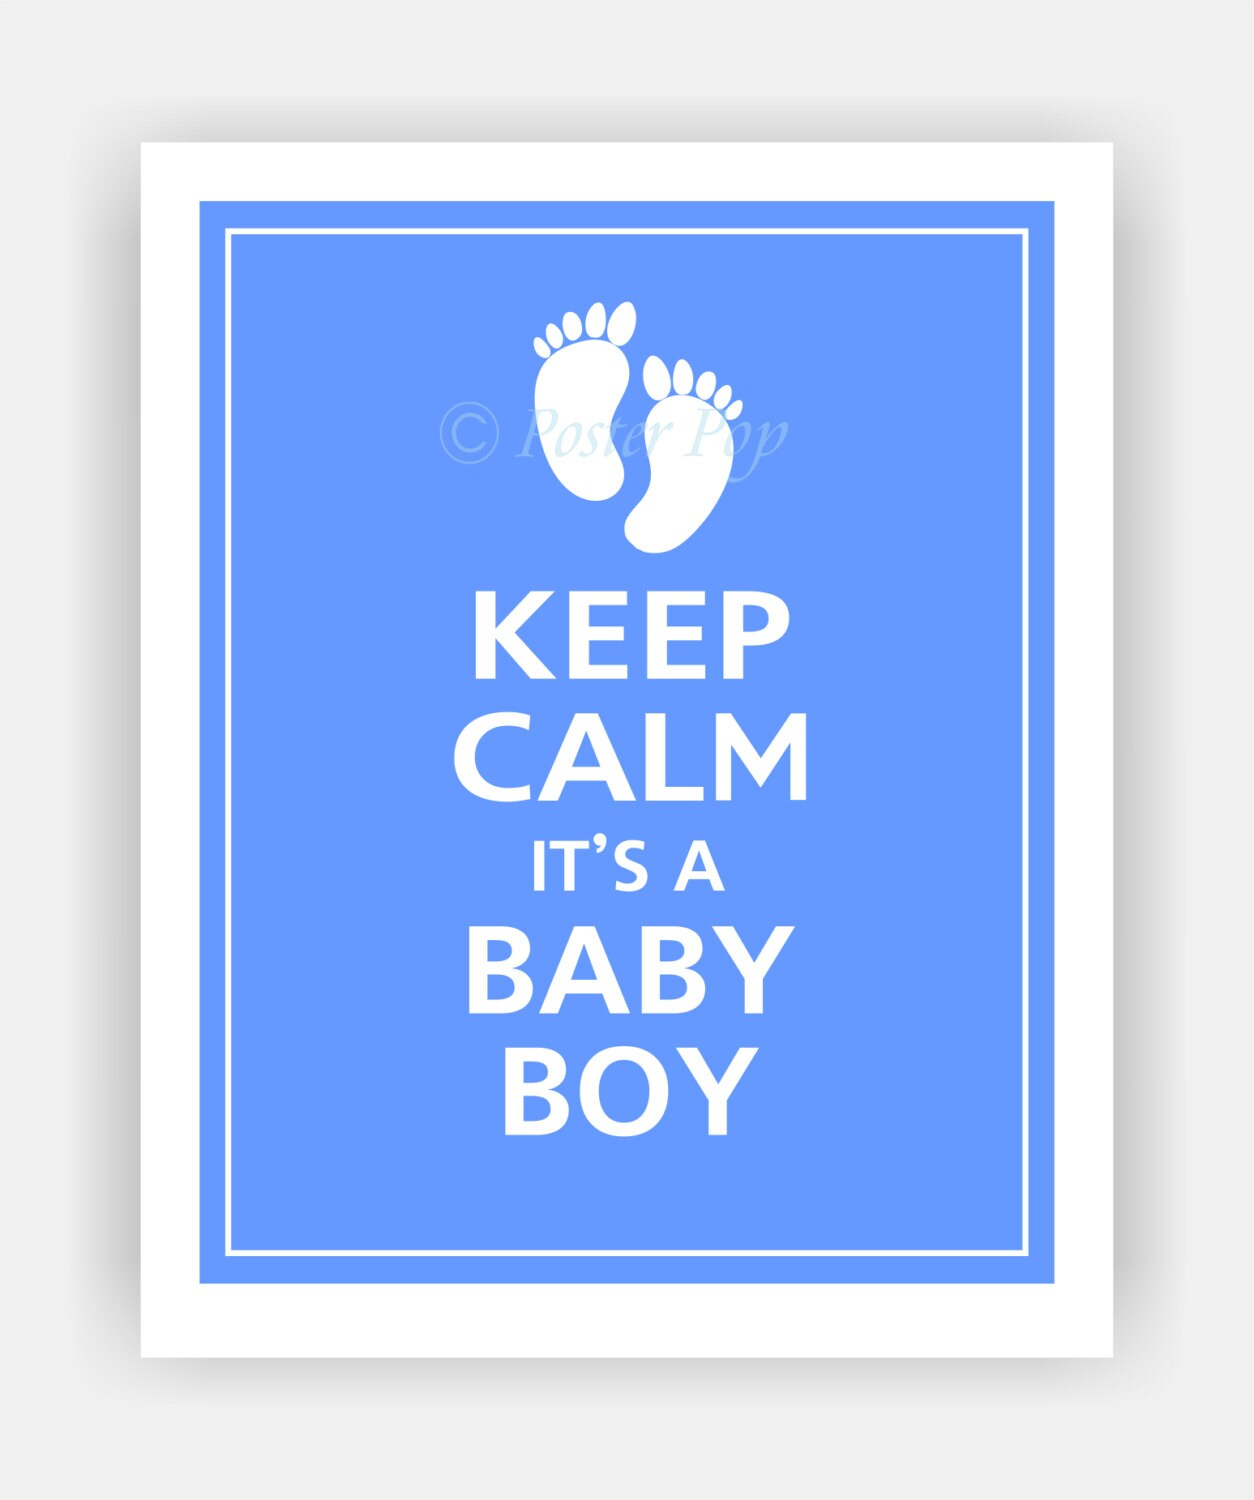 Keep Calm It's A BABY BOY Print with Personalization Option 8x10 (Blissful Blue featured--over 700 colors to choose from)